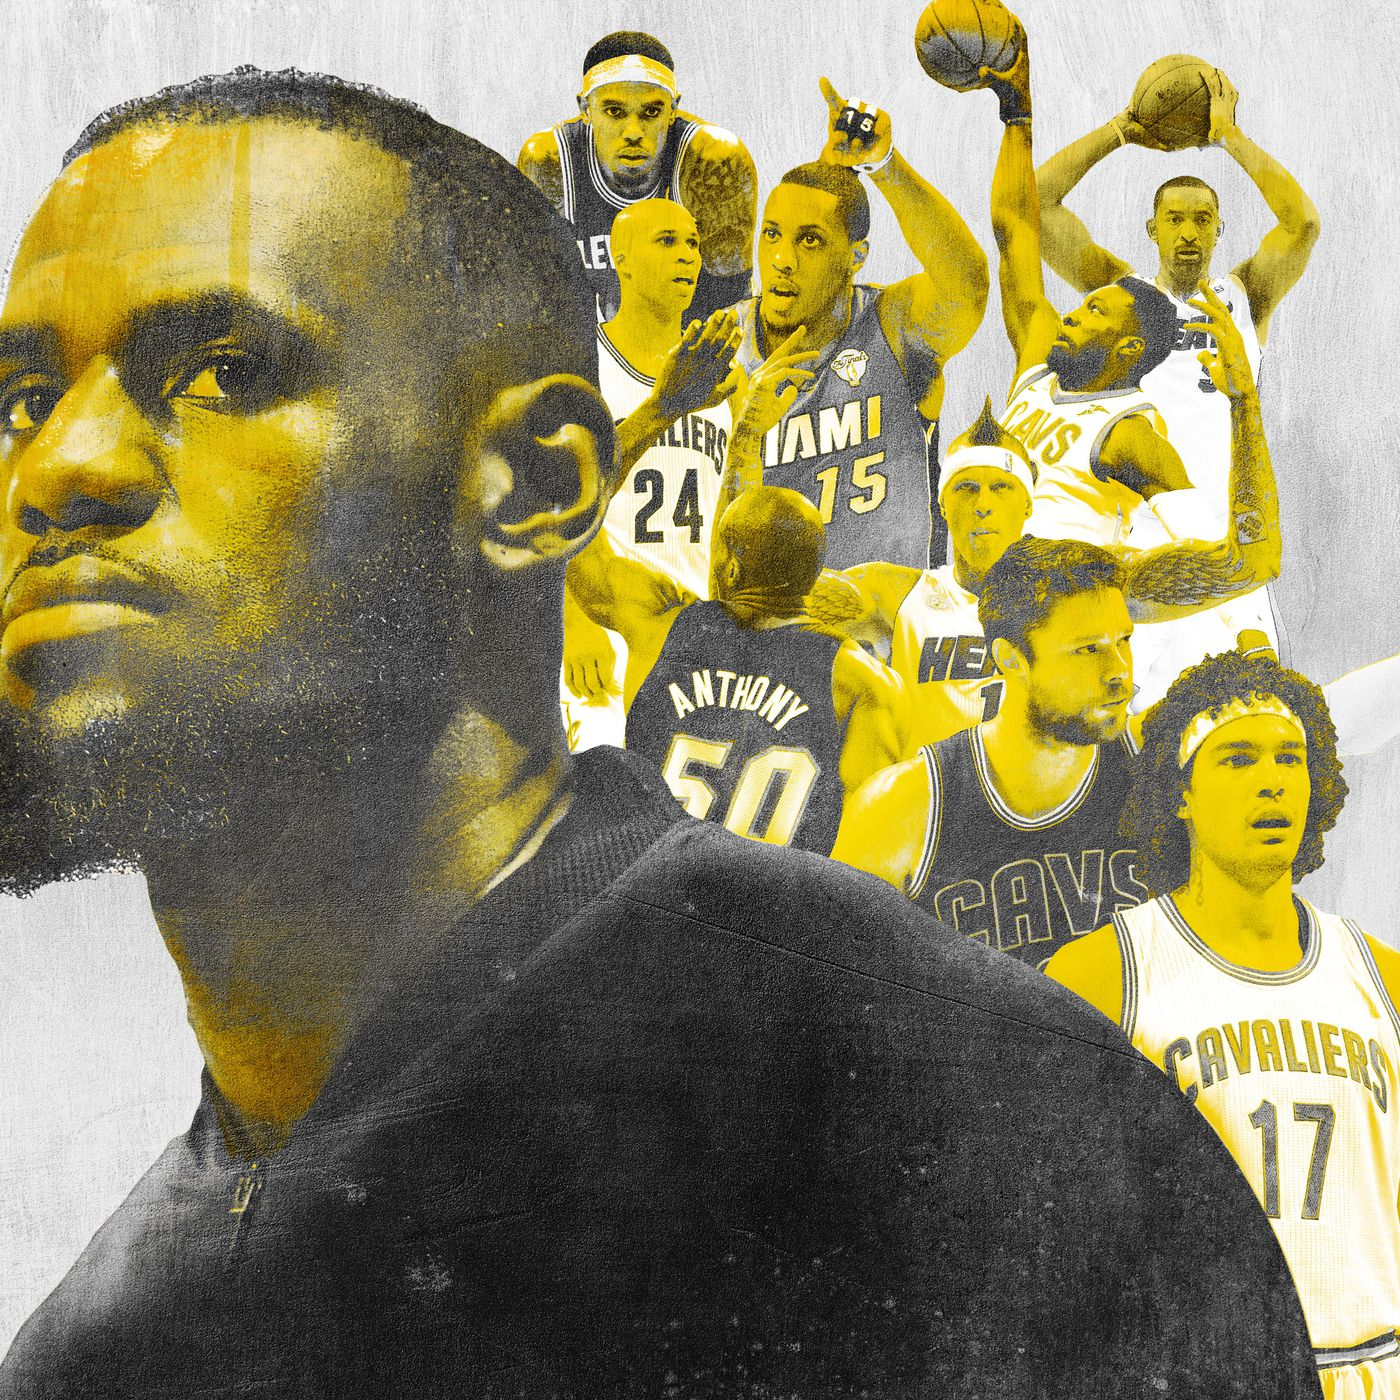 75824a21c333 Ranking Every Teammate LeBron James Has Ever Carried to the NBA Finals -  The Ringer